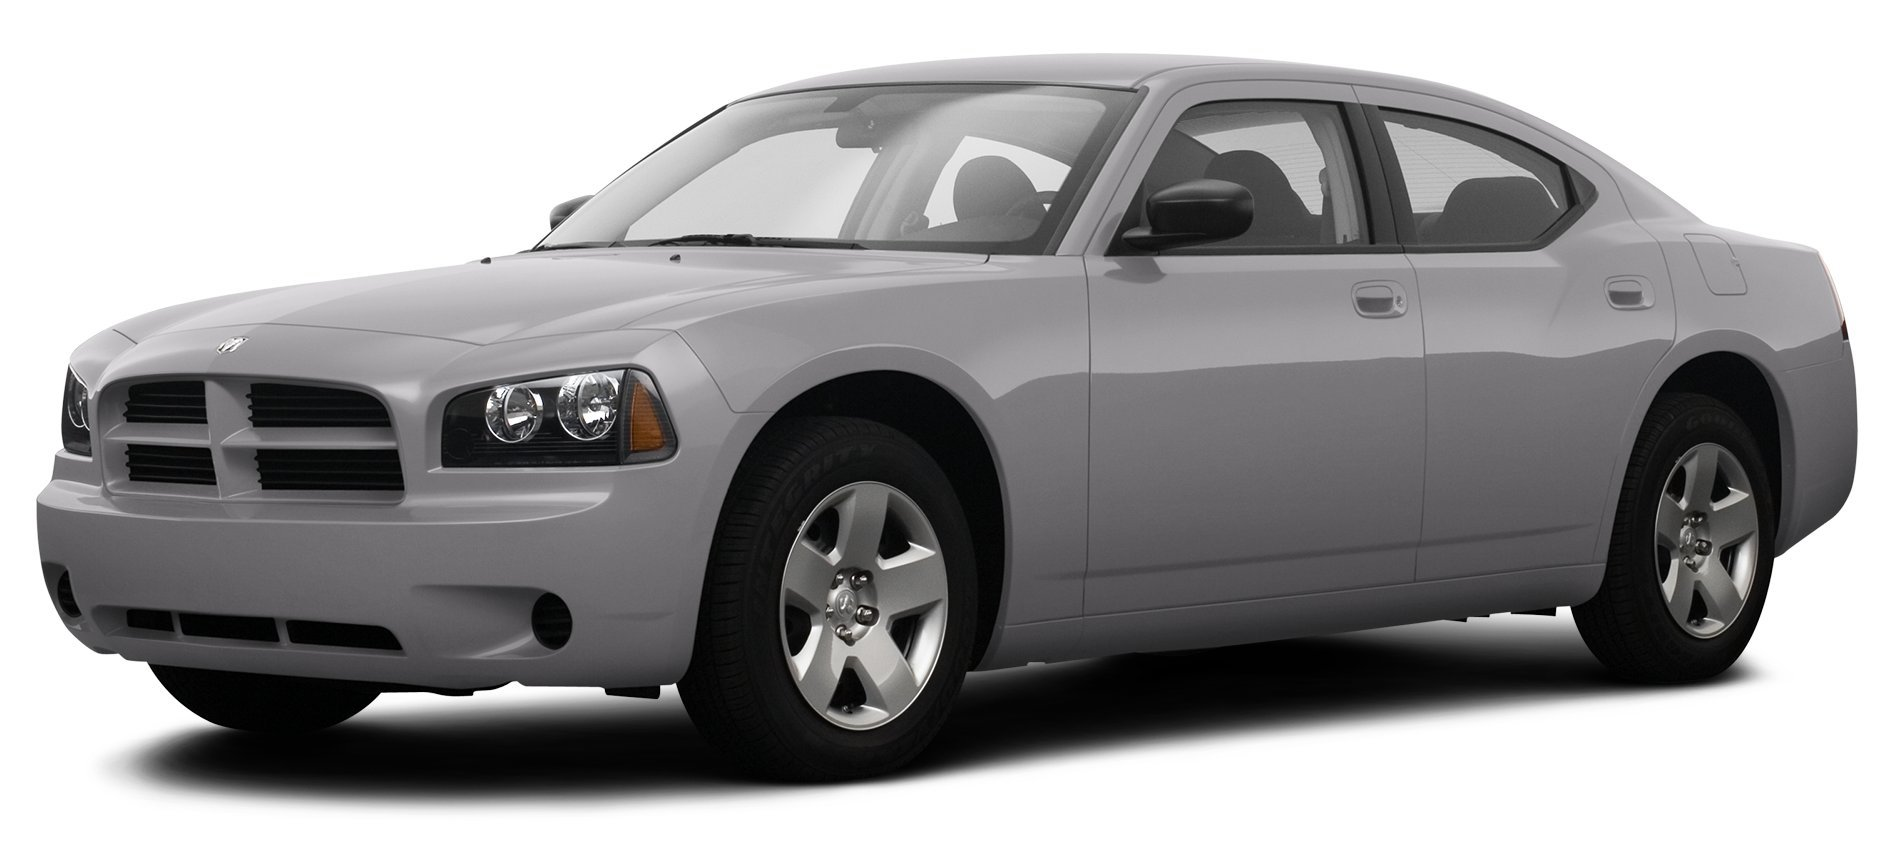 2008 dodge charger reviews images and specs. Black Bedroom Furniture Sets. Home Design Ideas